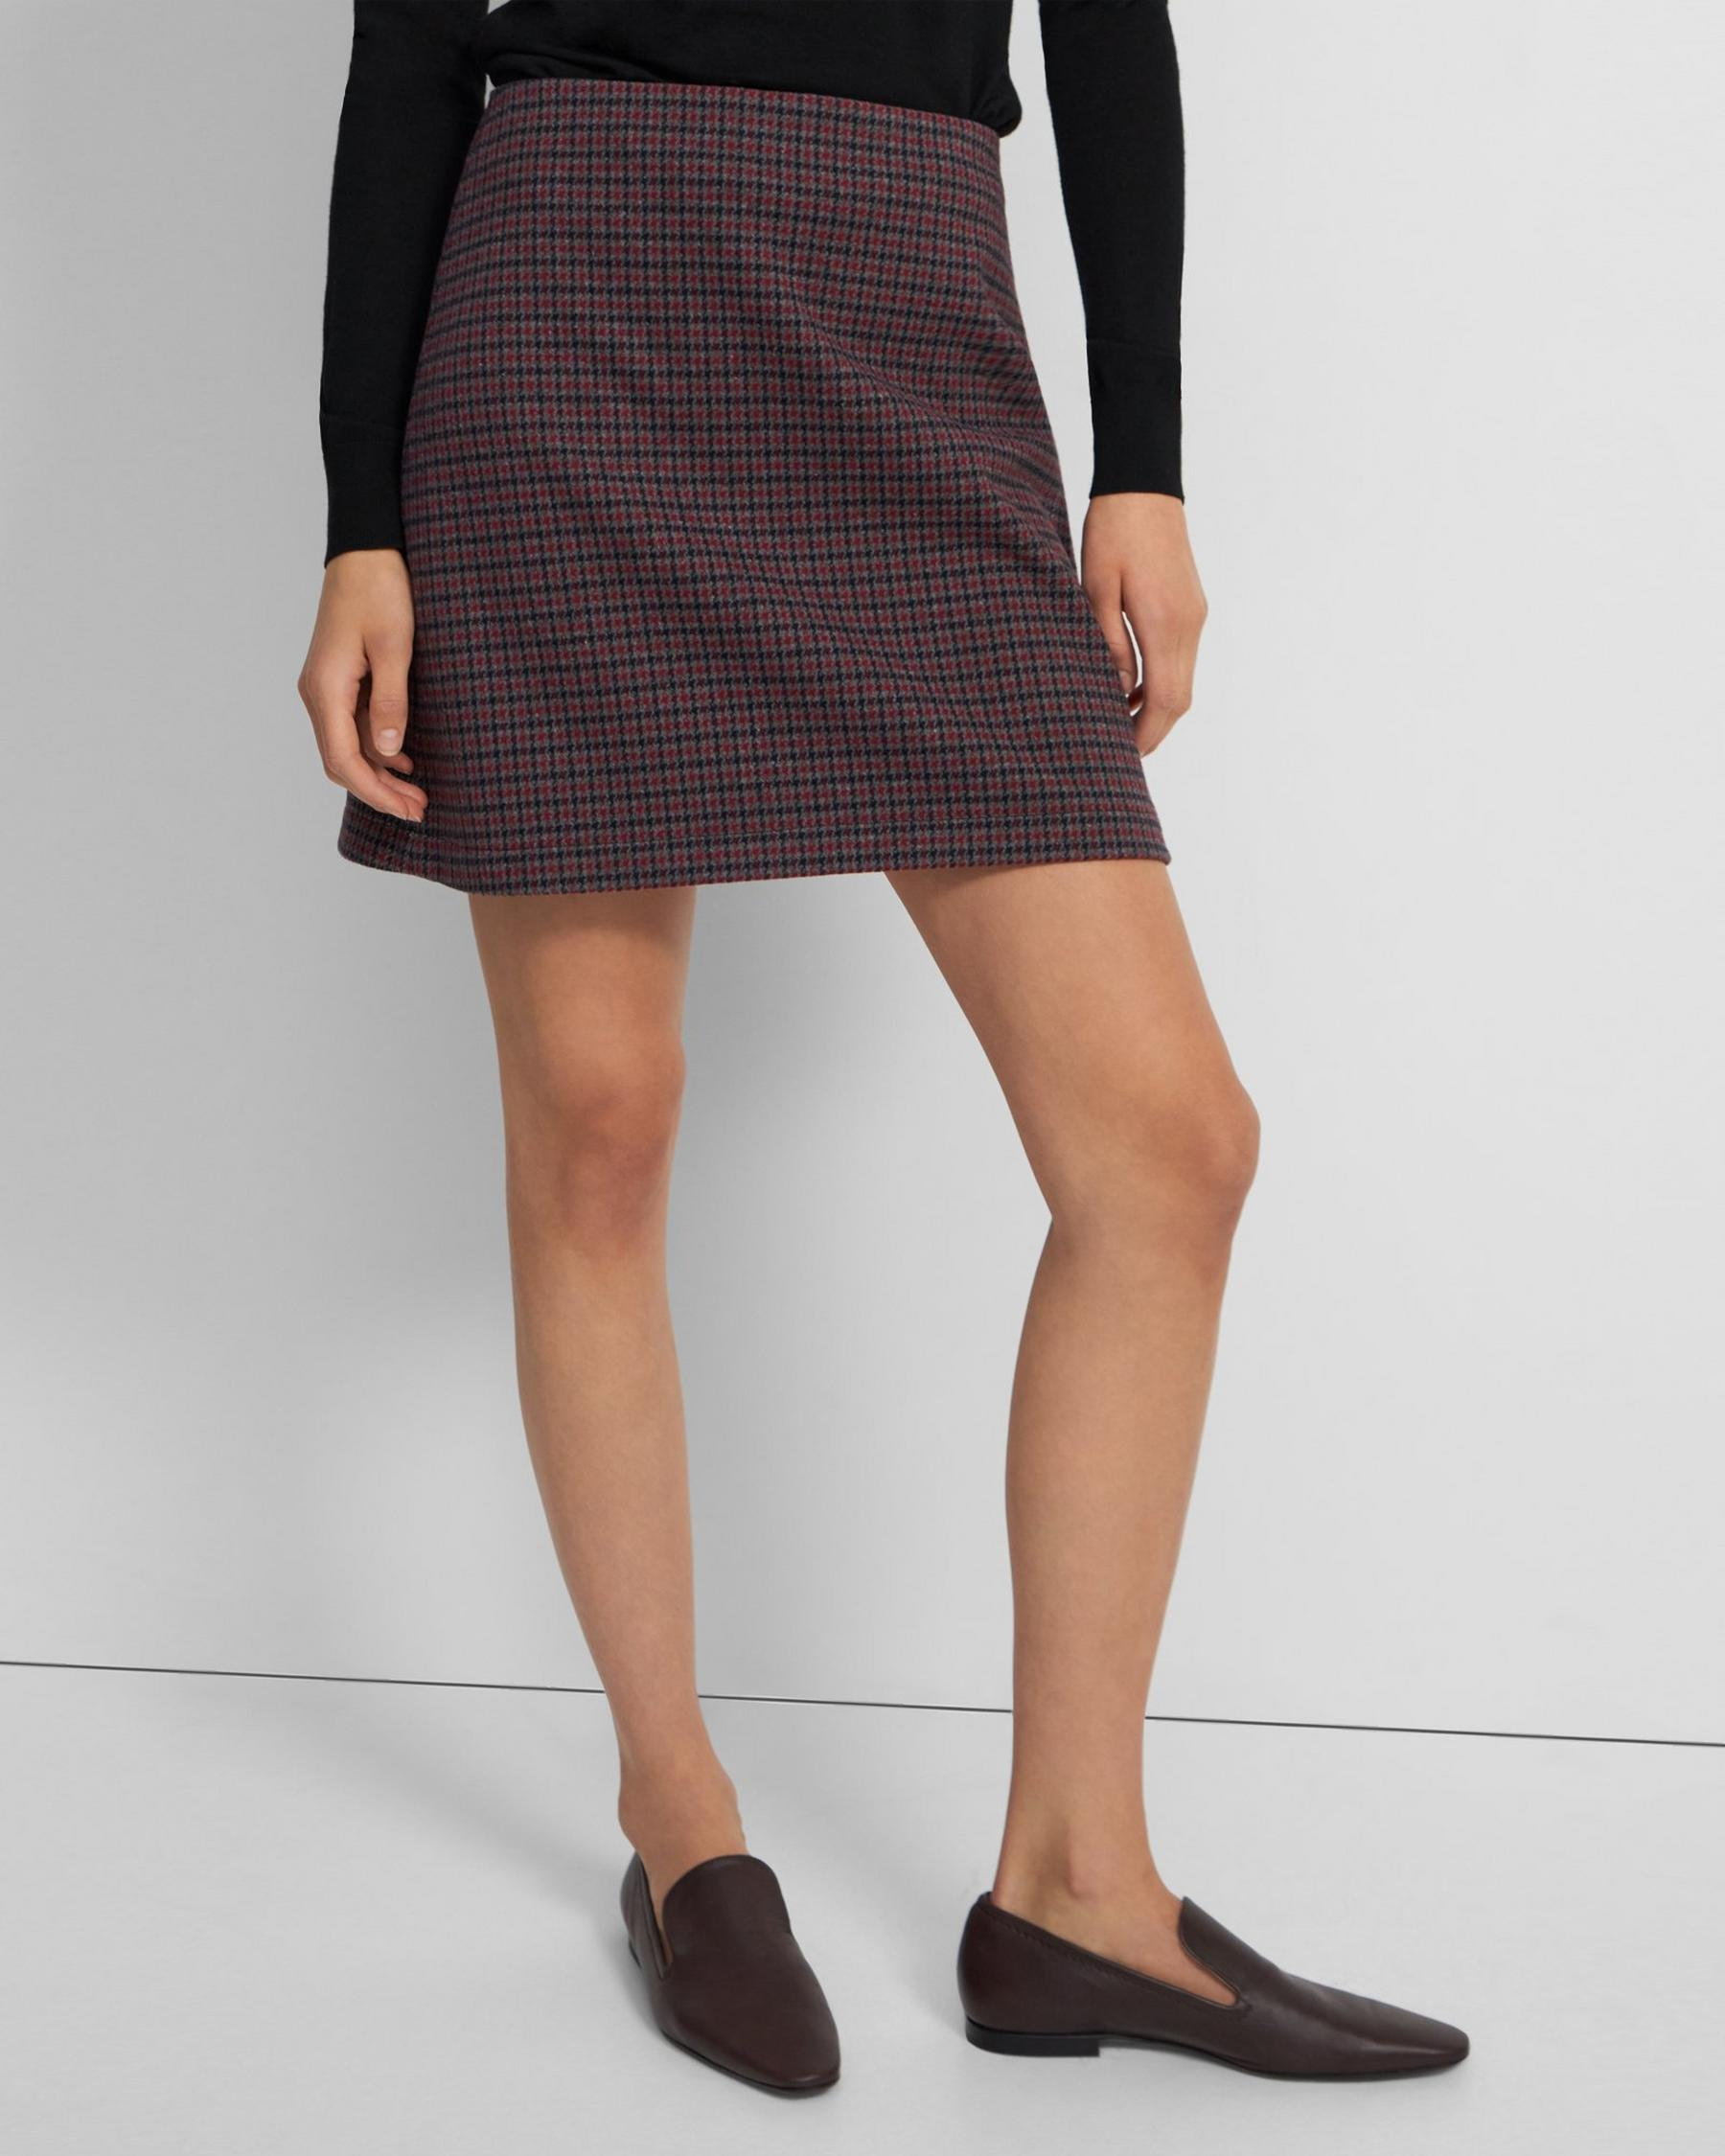 High-Waisted Mini Skirt in Grid Houndstooth